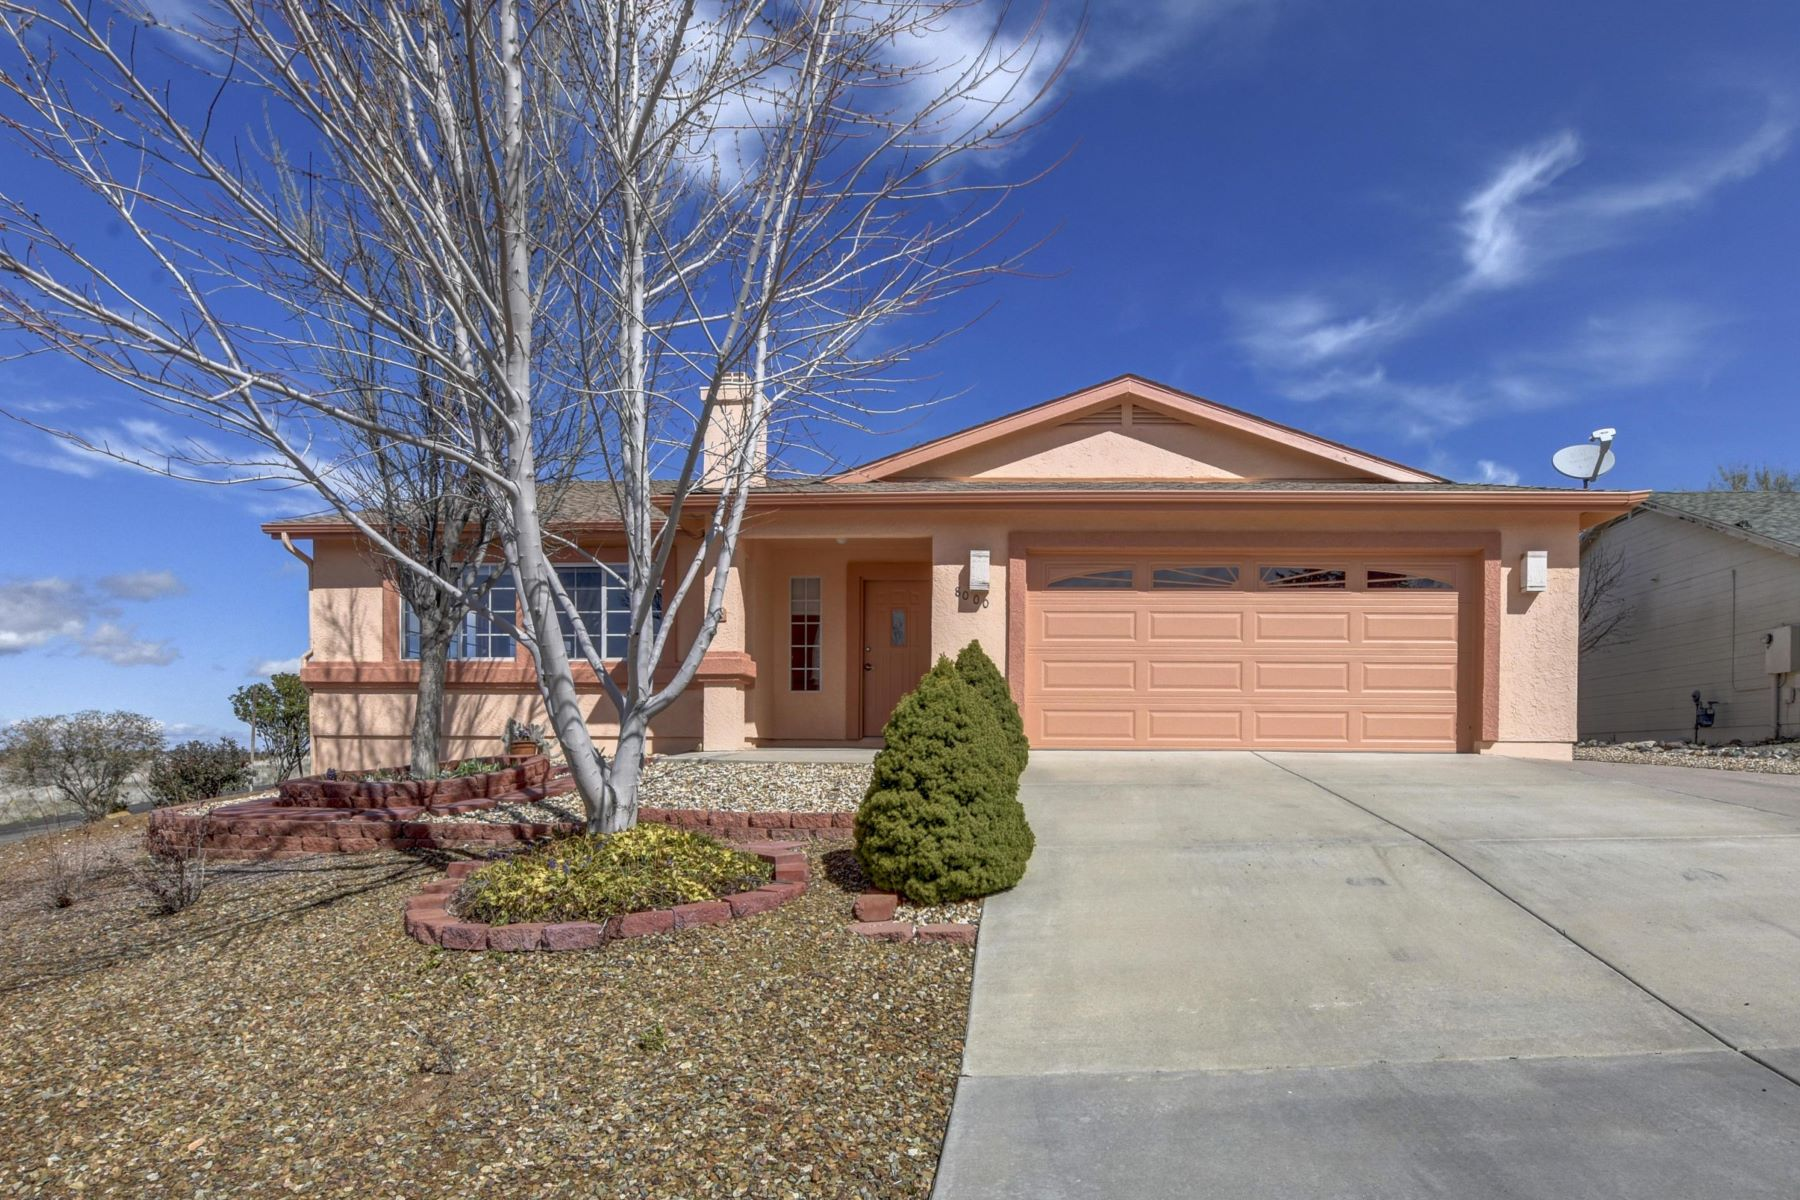 Single Family Homes for Active at 8000 Eagles Nest Lane, Prescott Valley, AZ 86314 8000 Eagles Nest Lane Prescott Valley, Arizona 86314 United States